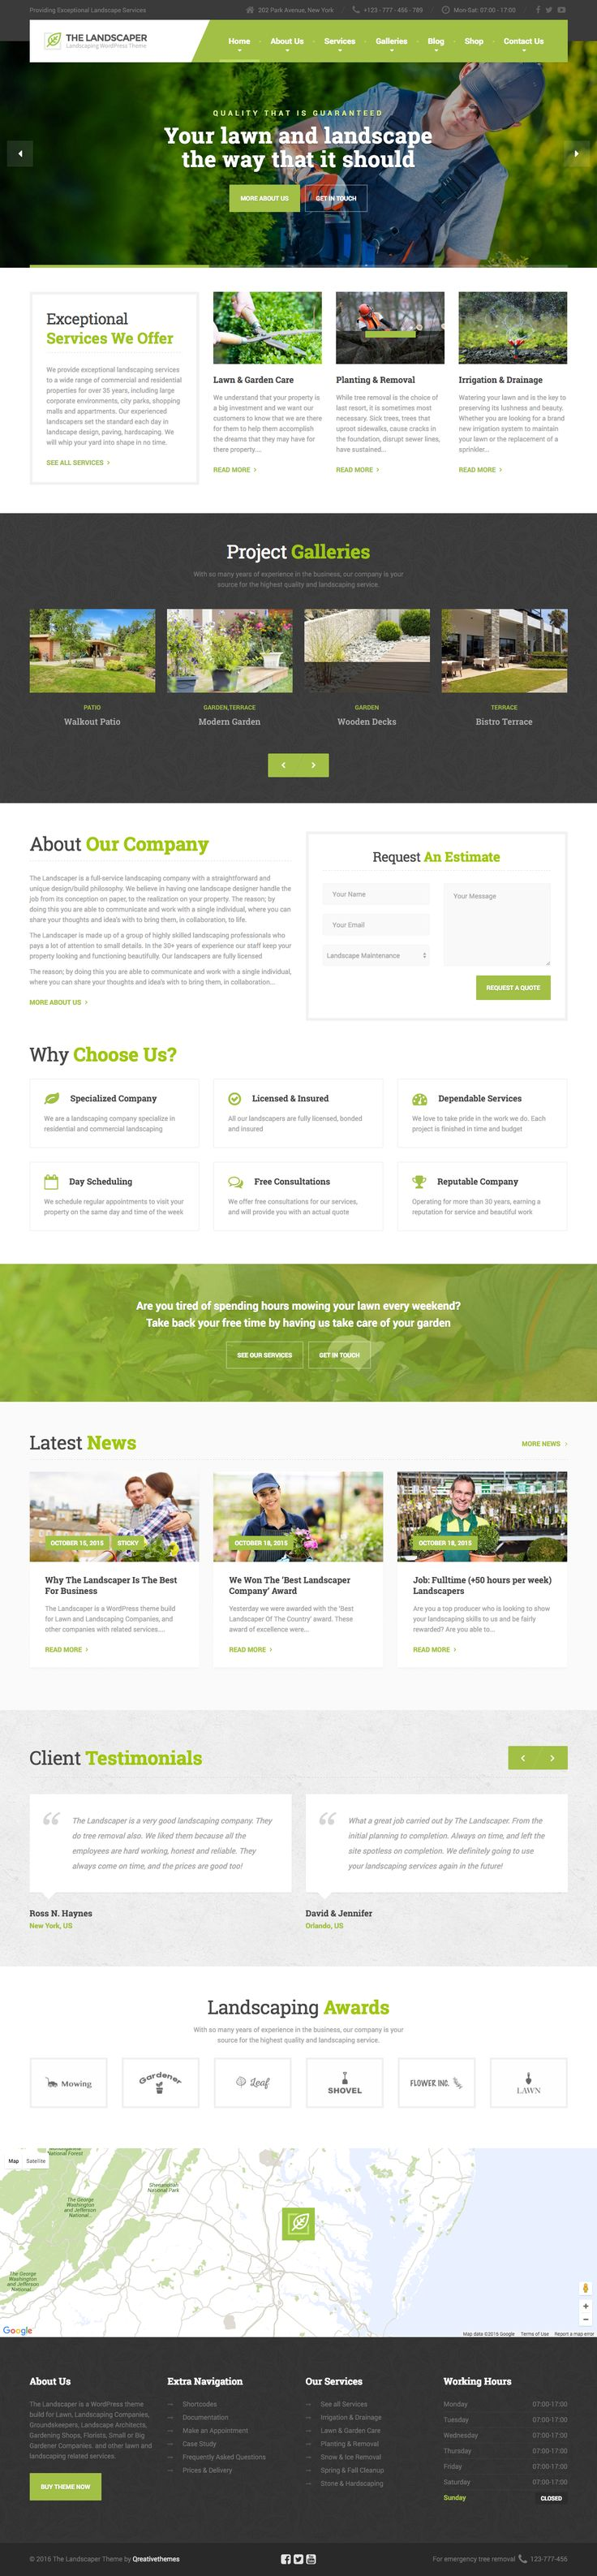 wedding invitation template themeforest%0A The Landscaper is Premium full Responsive Retina WordPress Landscaping Theme   Drag and Drop  Test free demo at ThemeForest